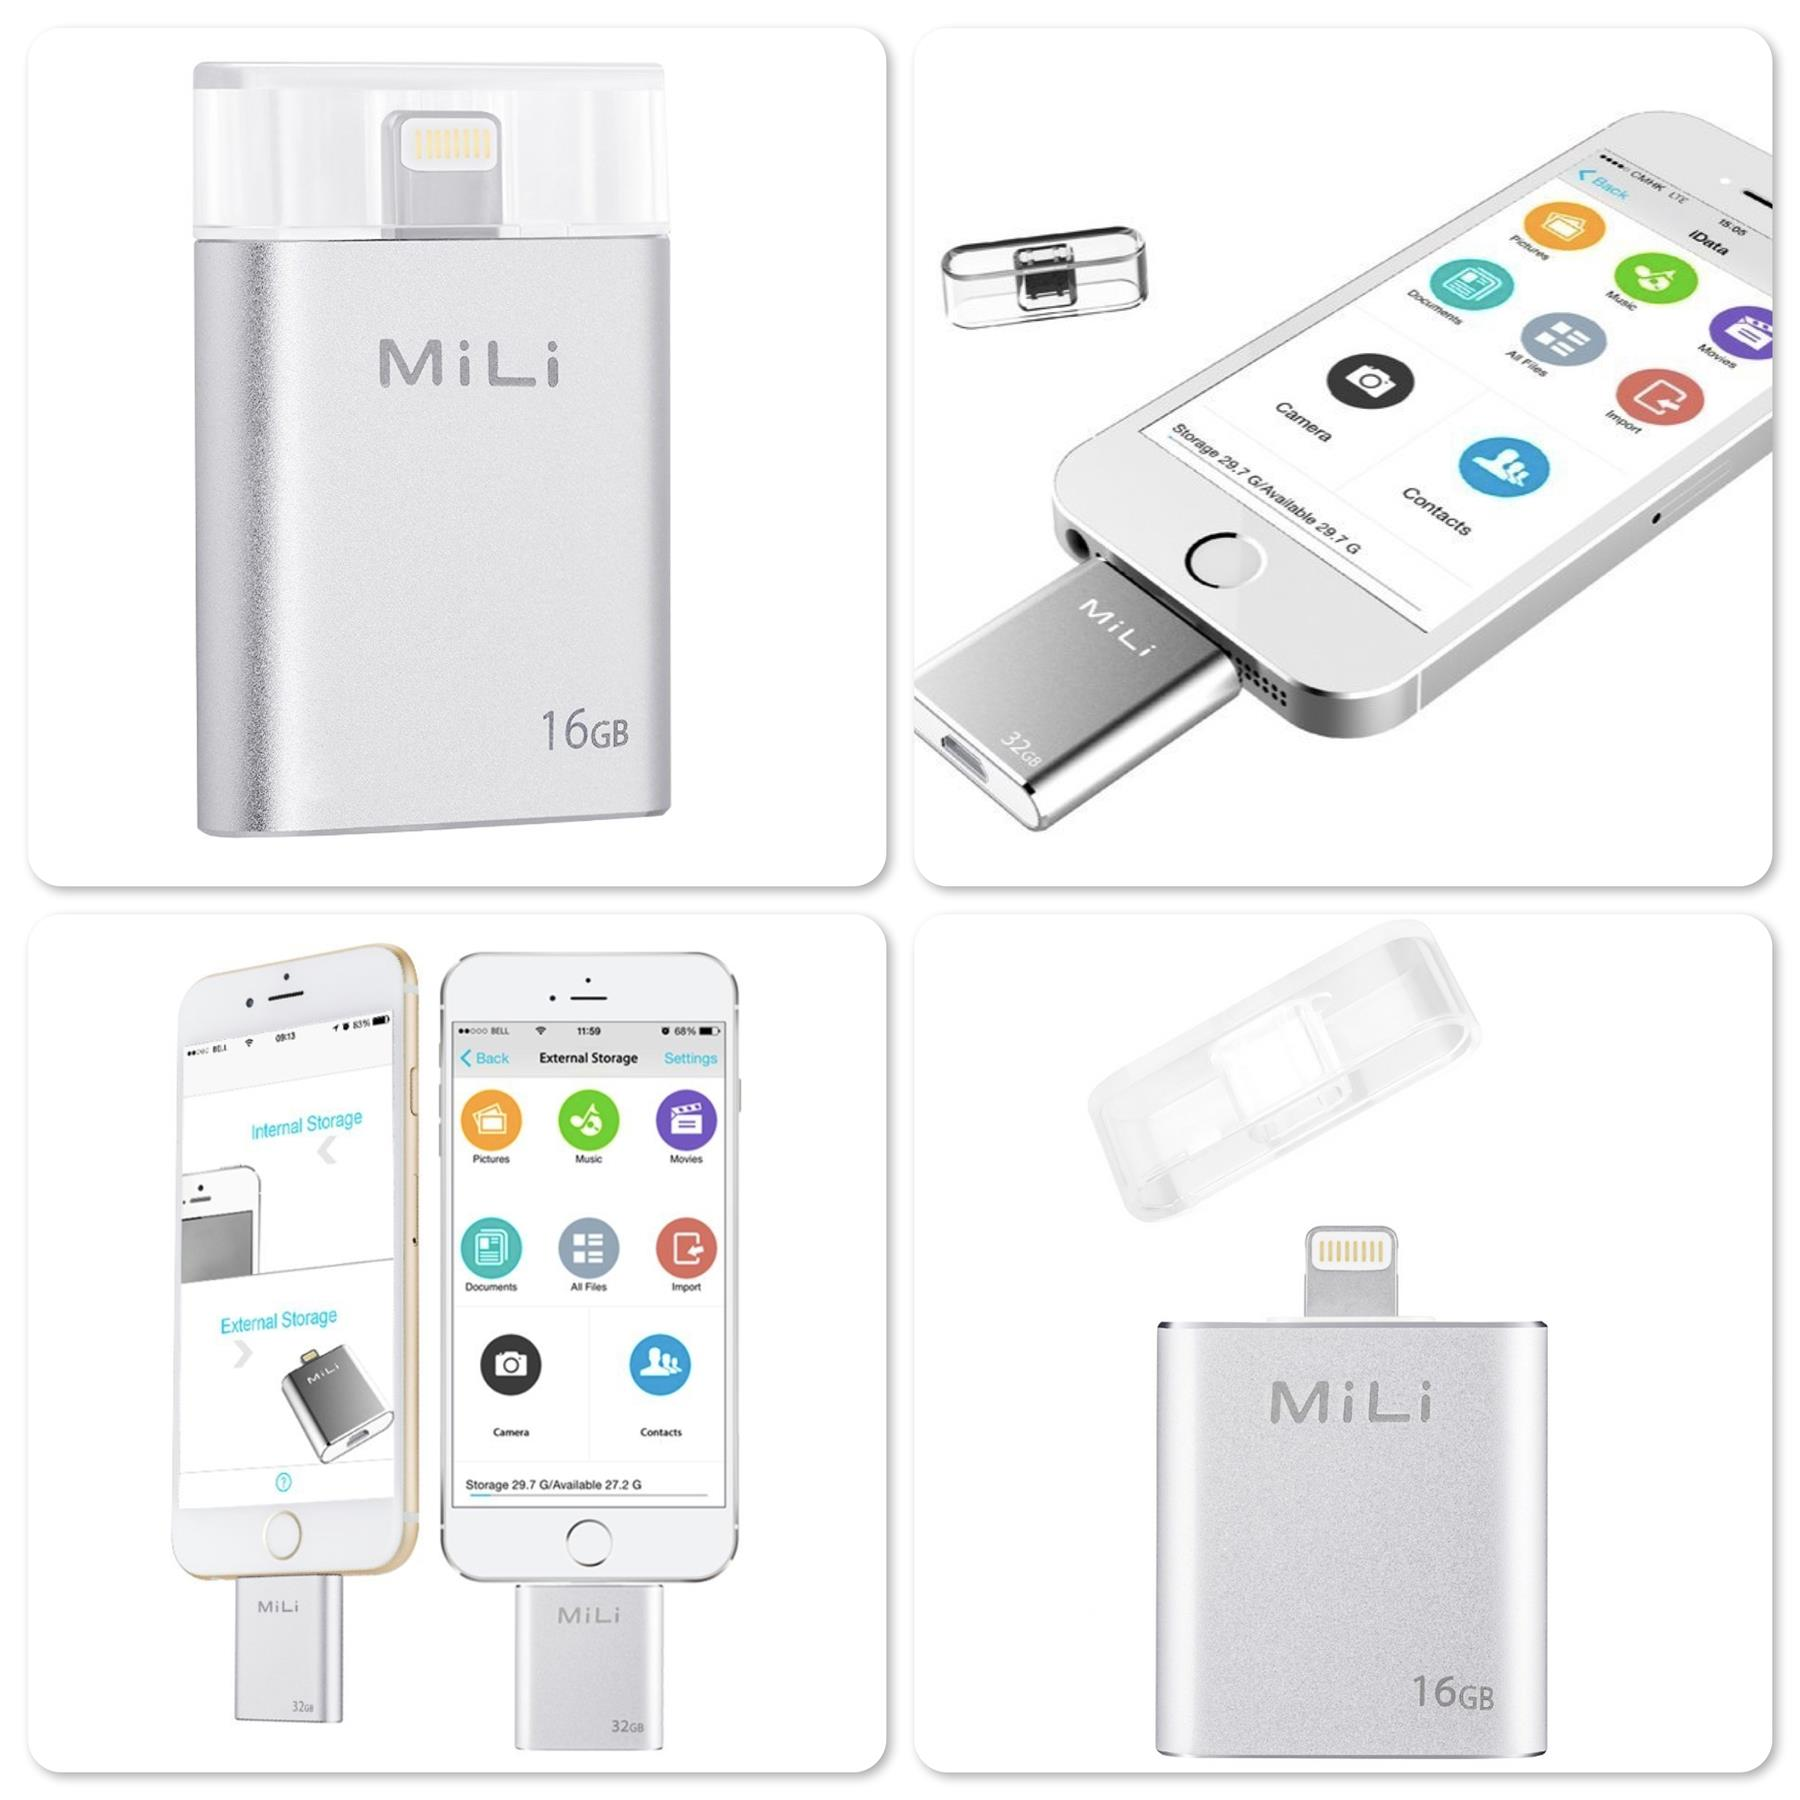 Original Mili iData HI-D91 USB Flash Drive with MFi for iOS